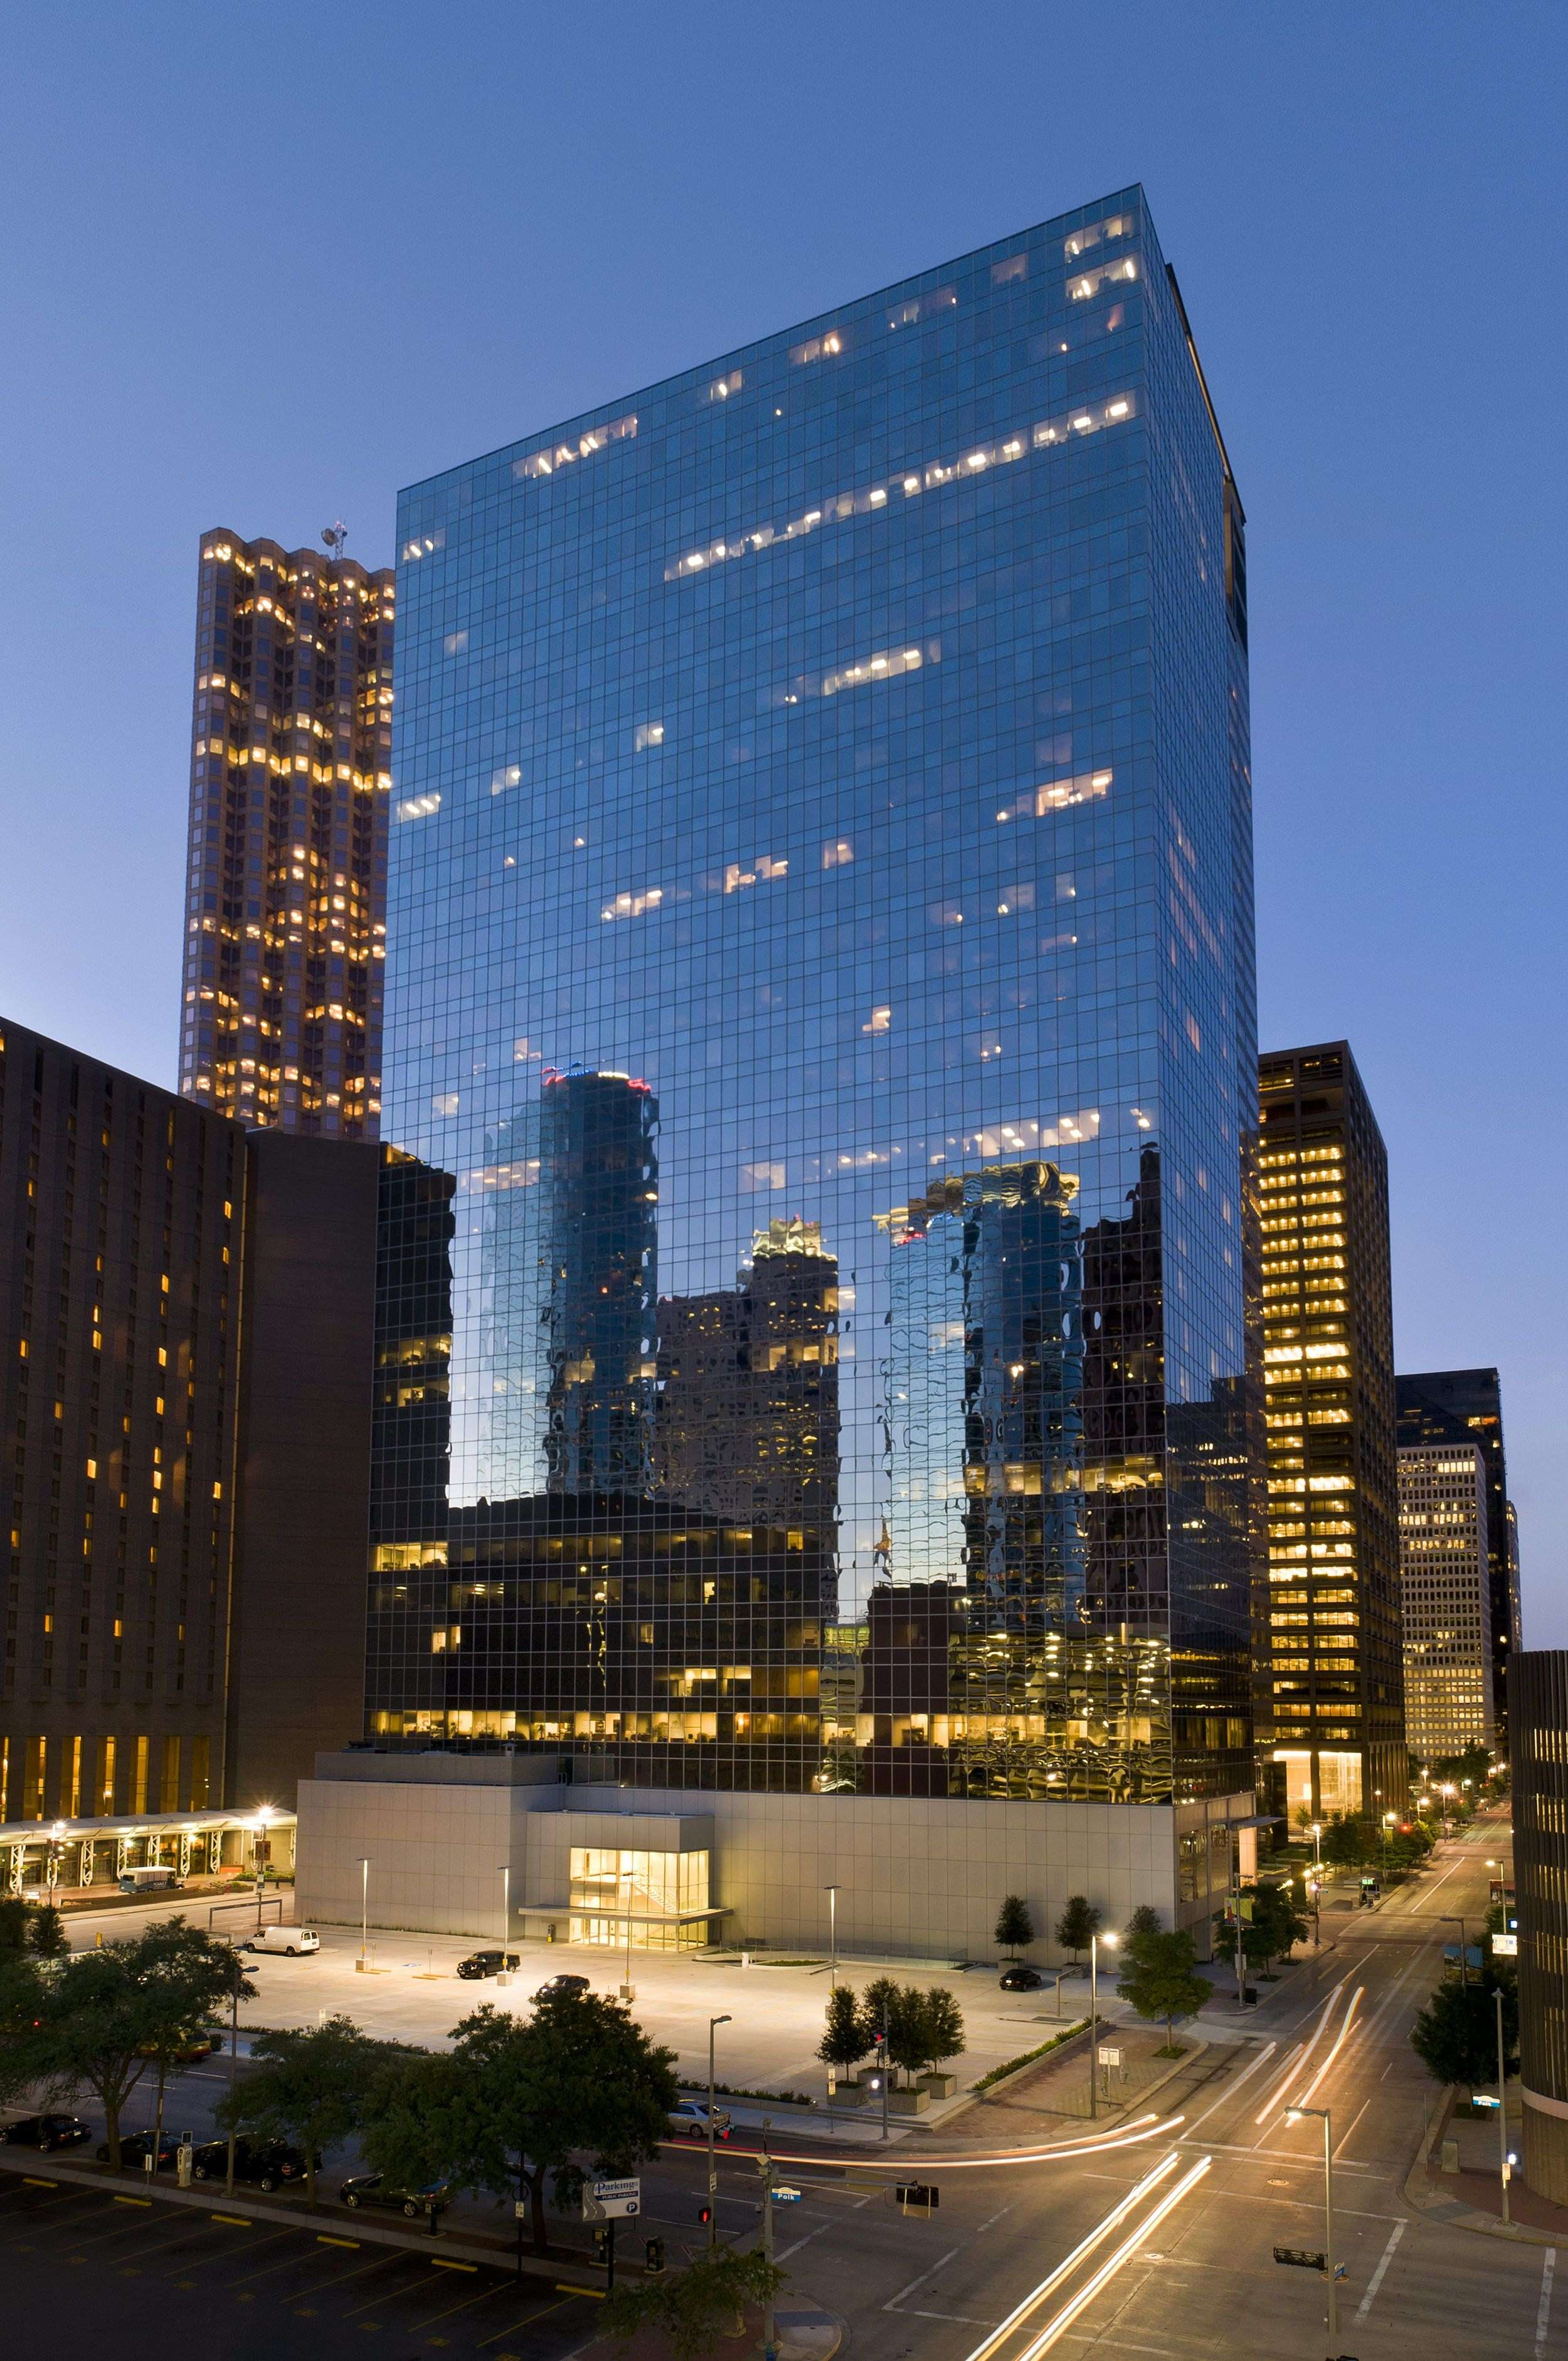 A skyscraper large building with full of glass windows built in the outdoor some distance away from